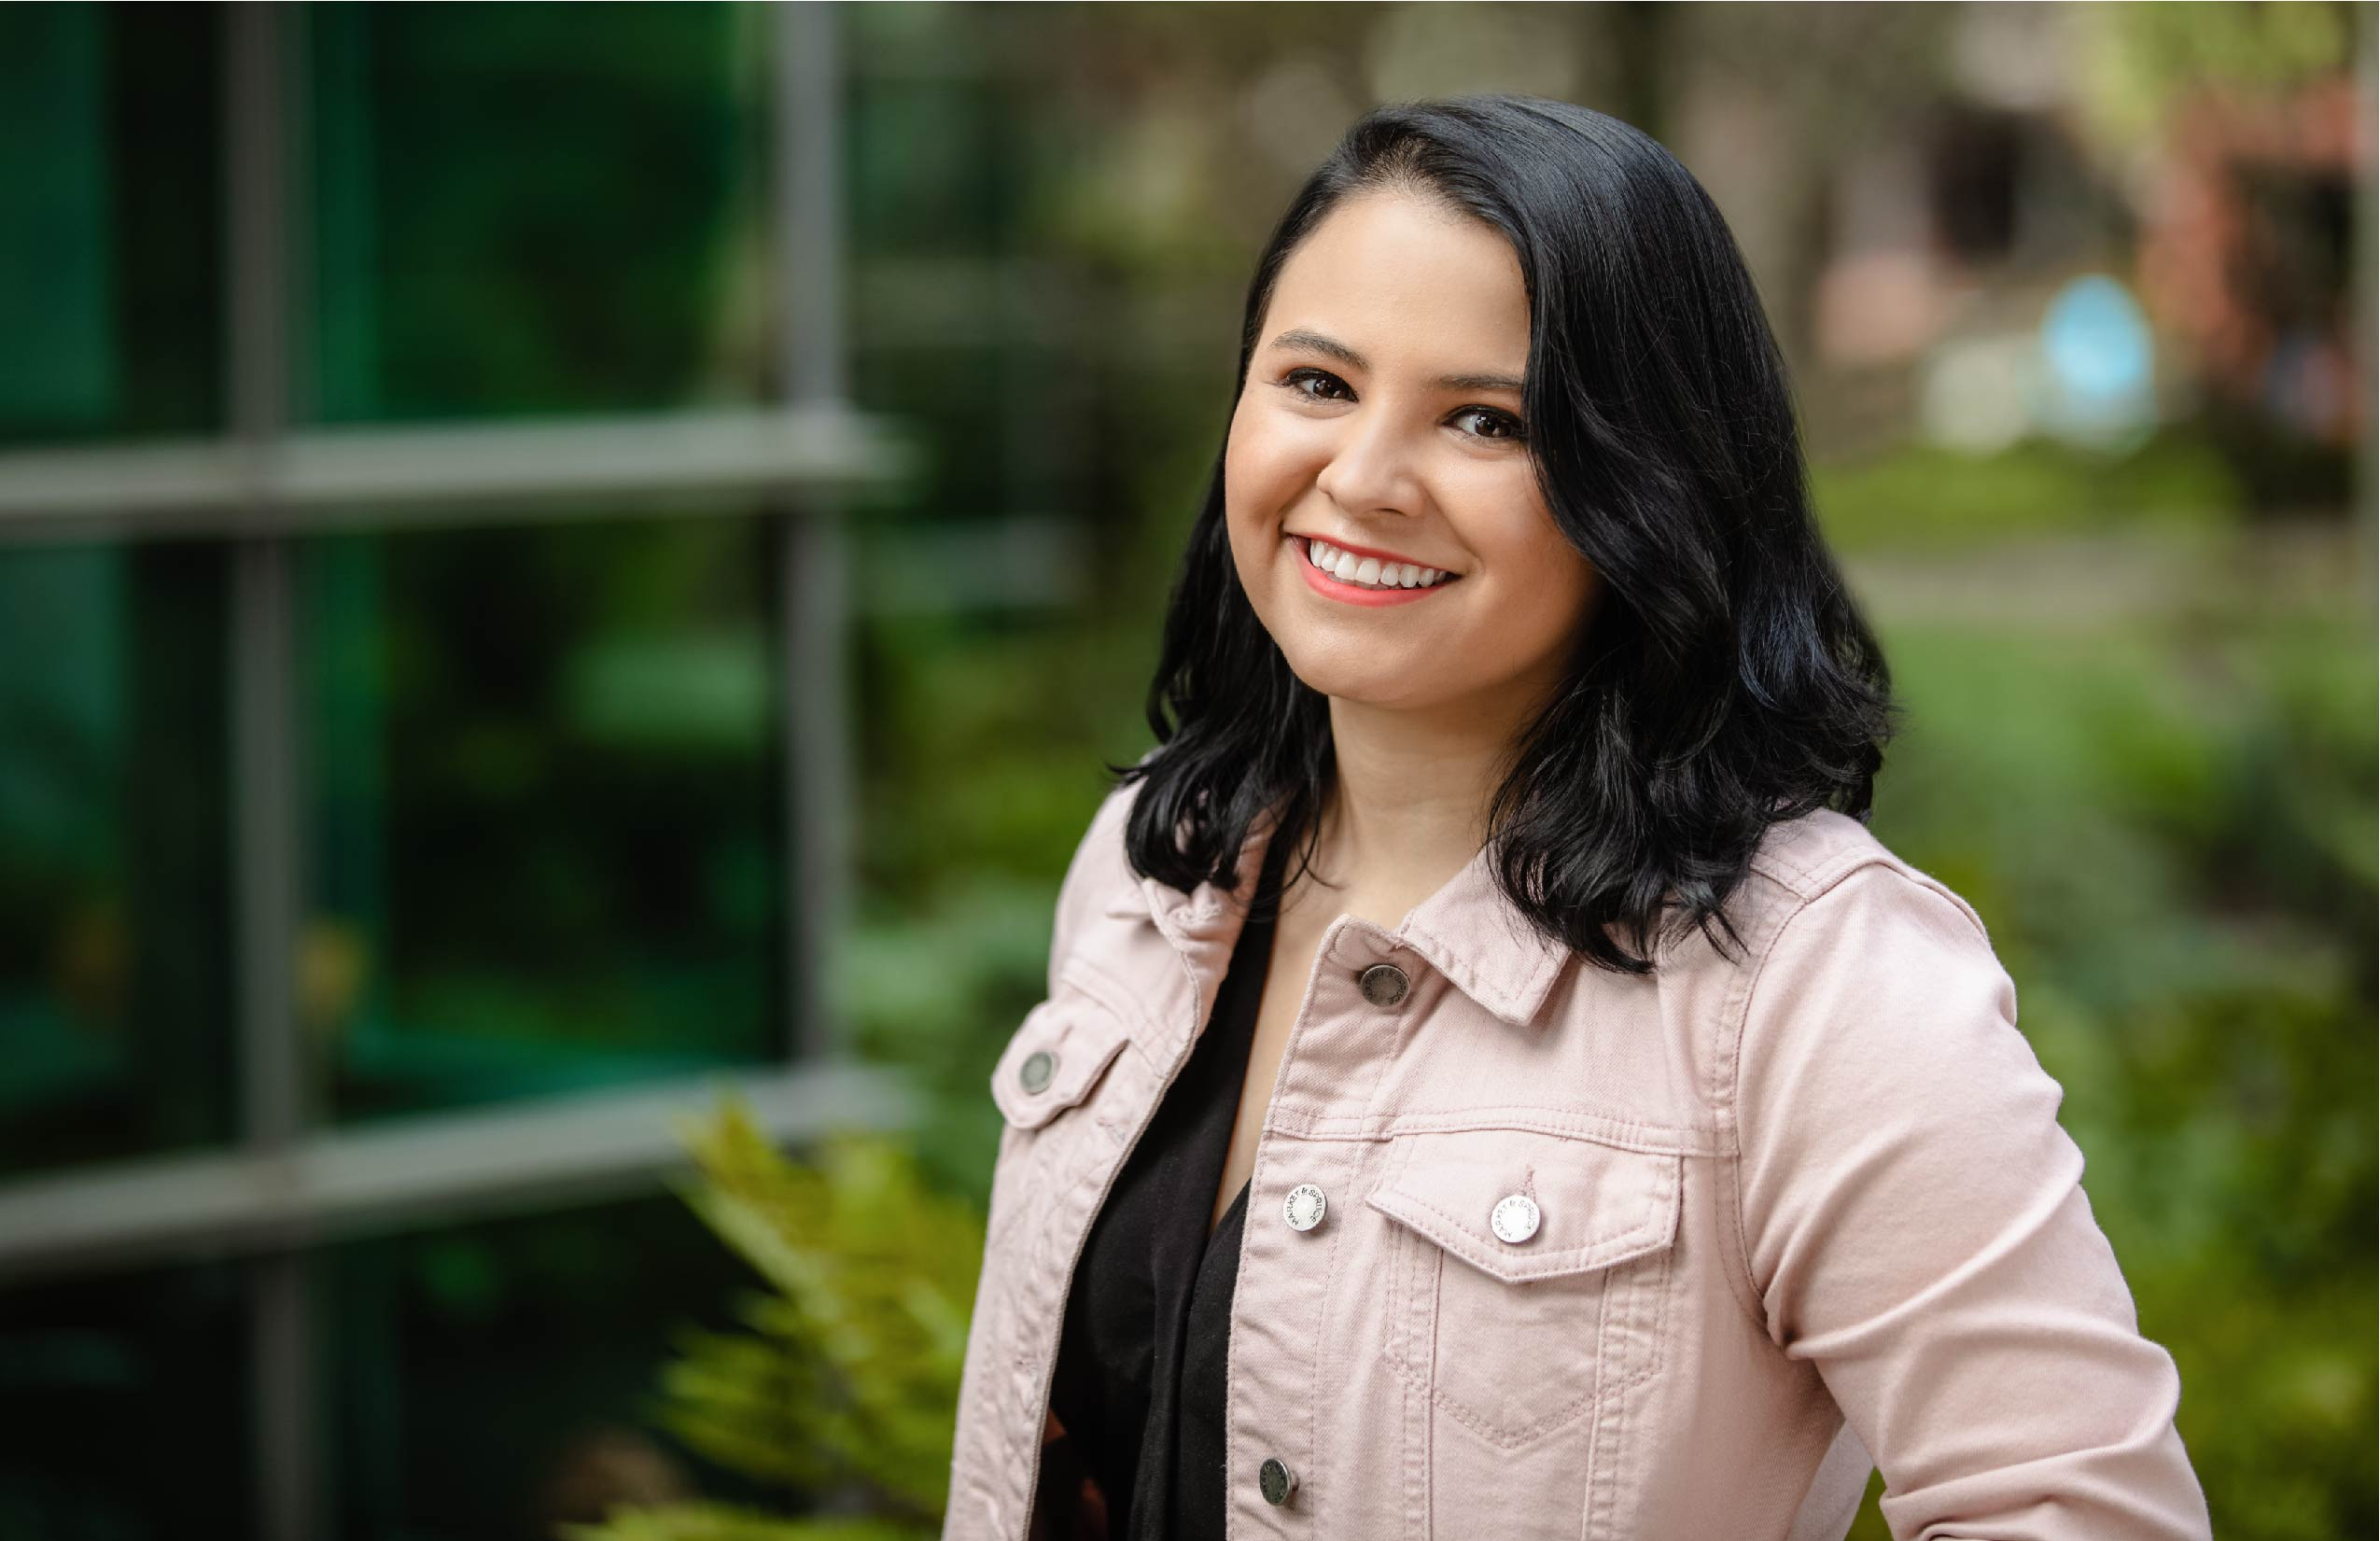 Xbox & Microsoft Product Manager: Vicky Flores